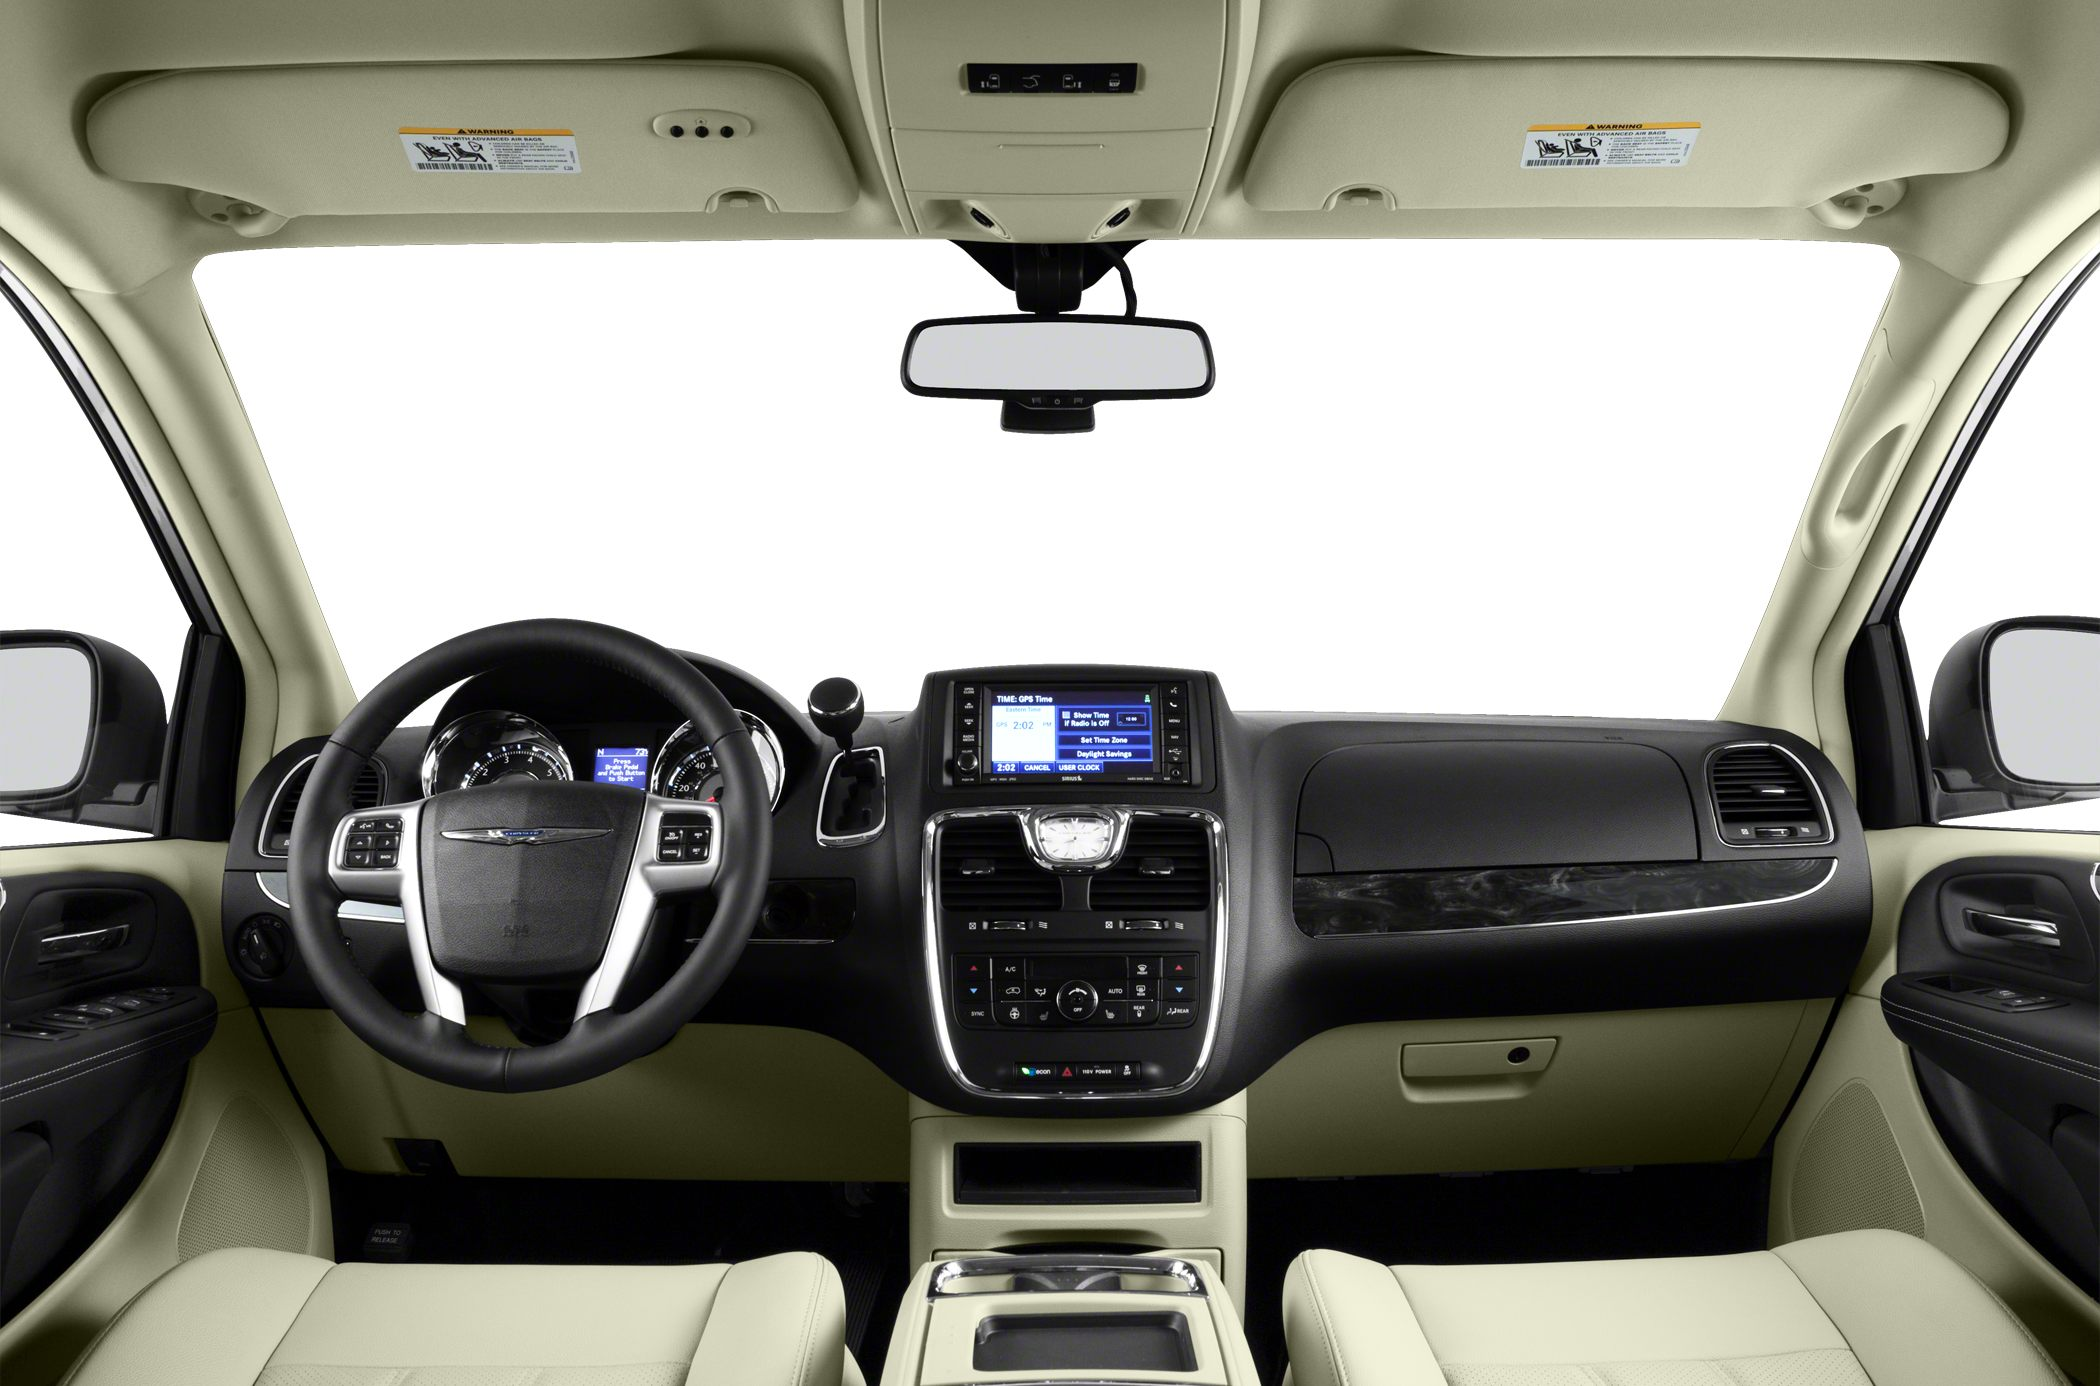 2015-Chrysler-Town-and-Country-Interior